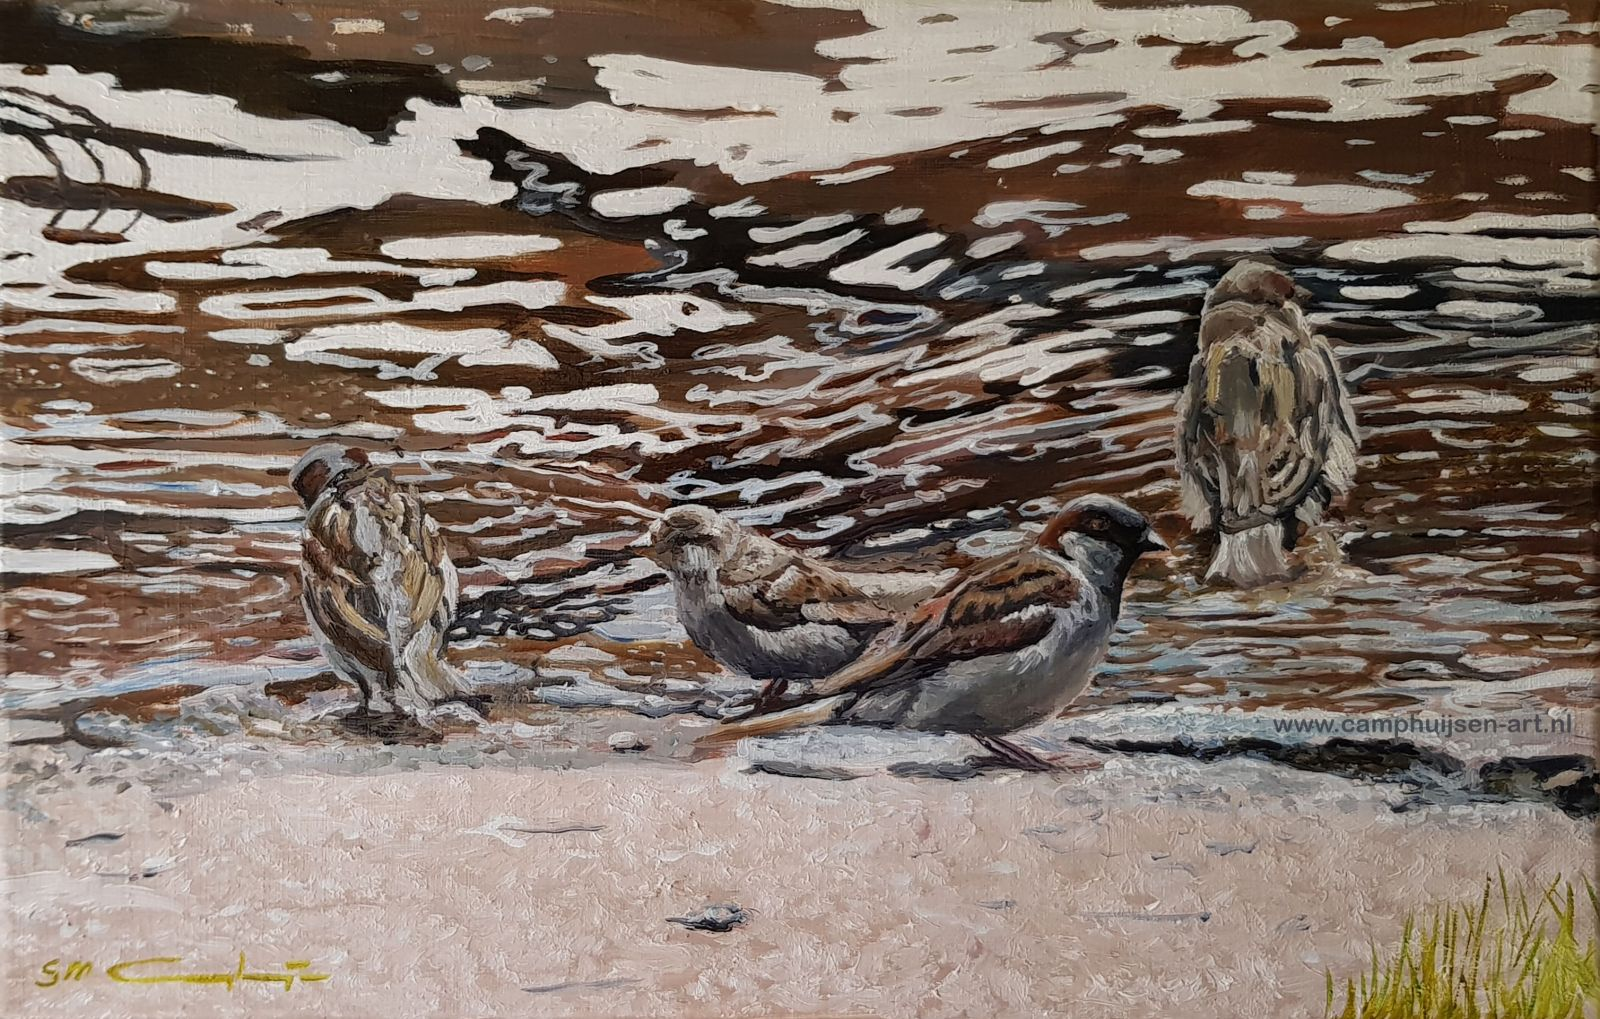 badderende mussen, bathing sparrows